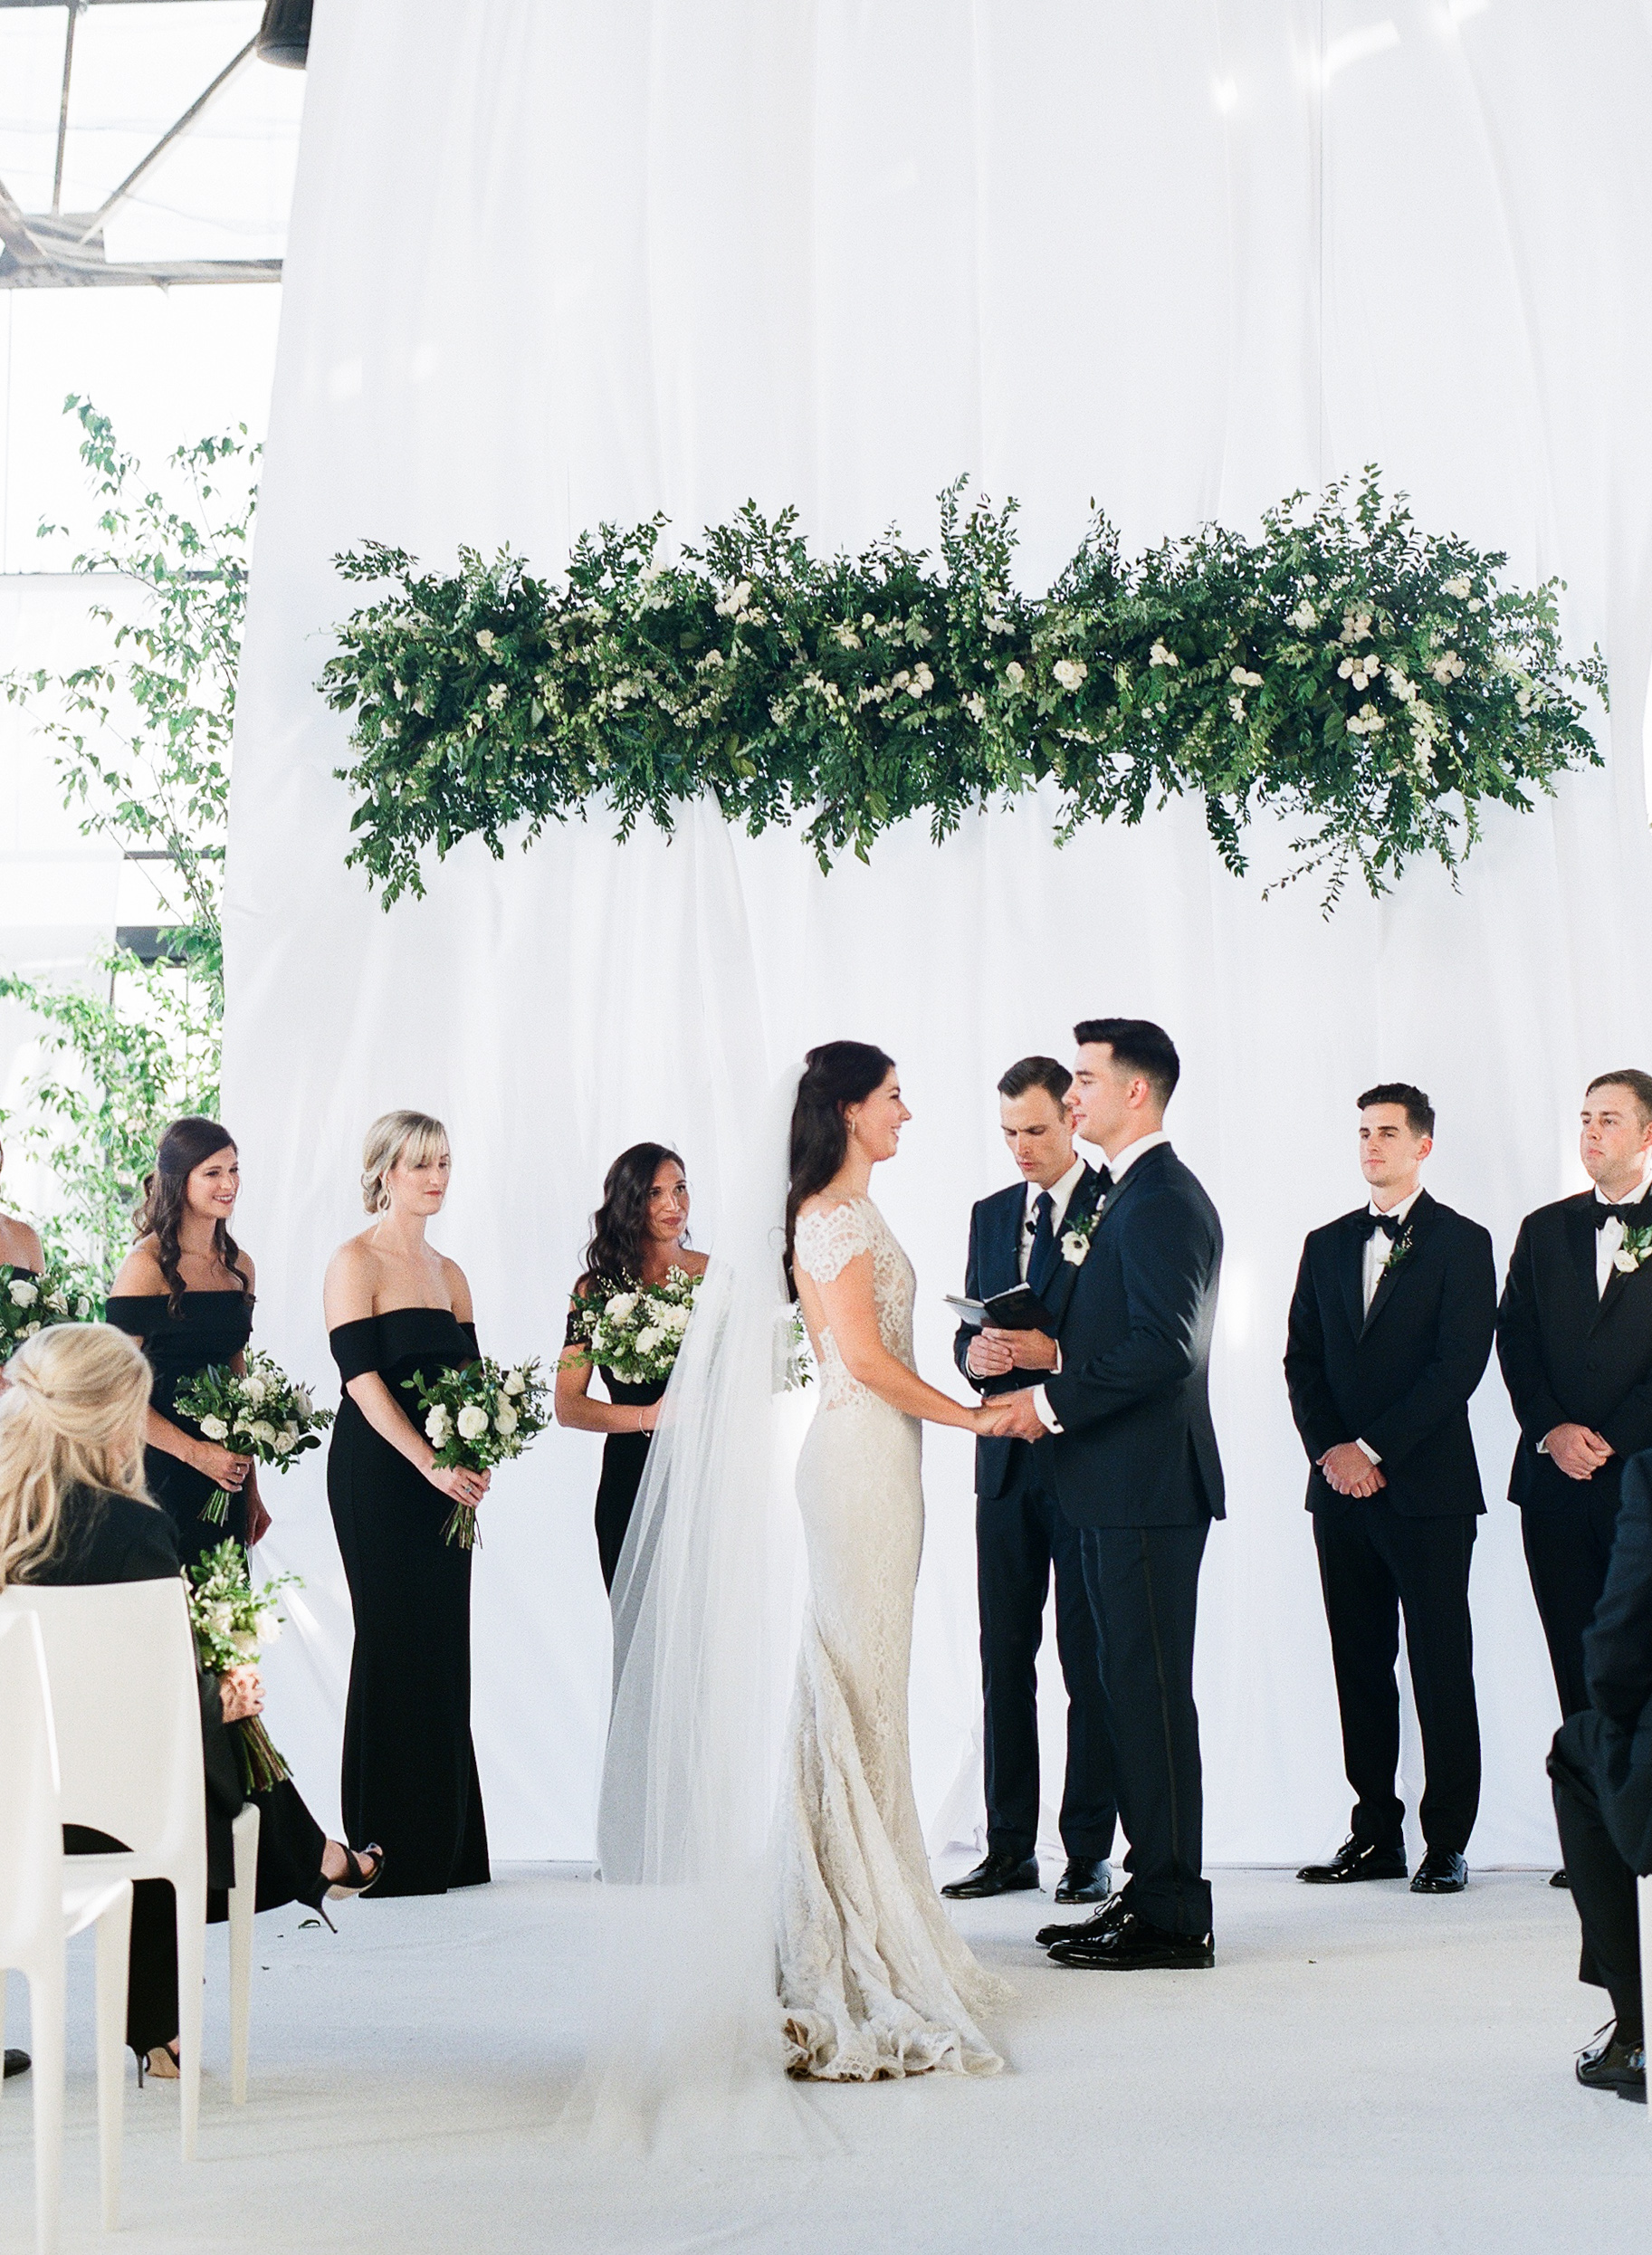 Nine Special Wedding-Related Details Couples Often Forget to Make Time For